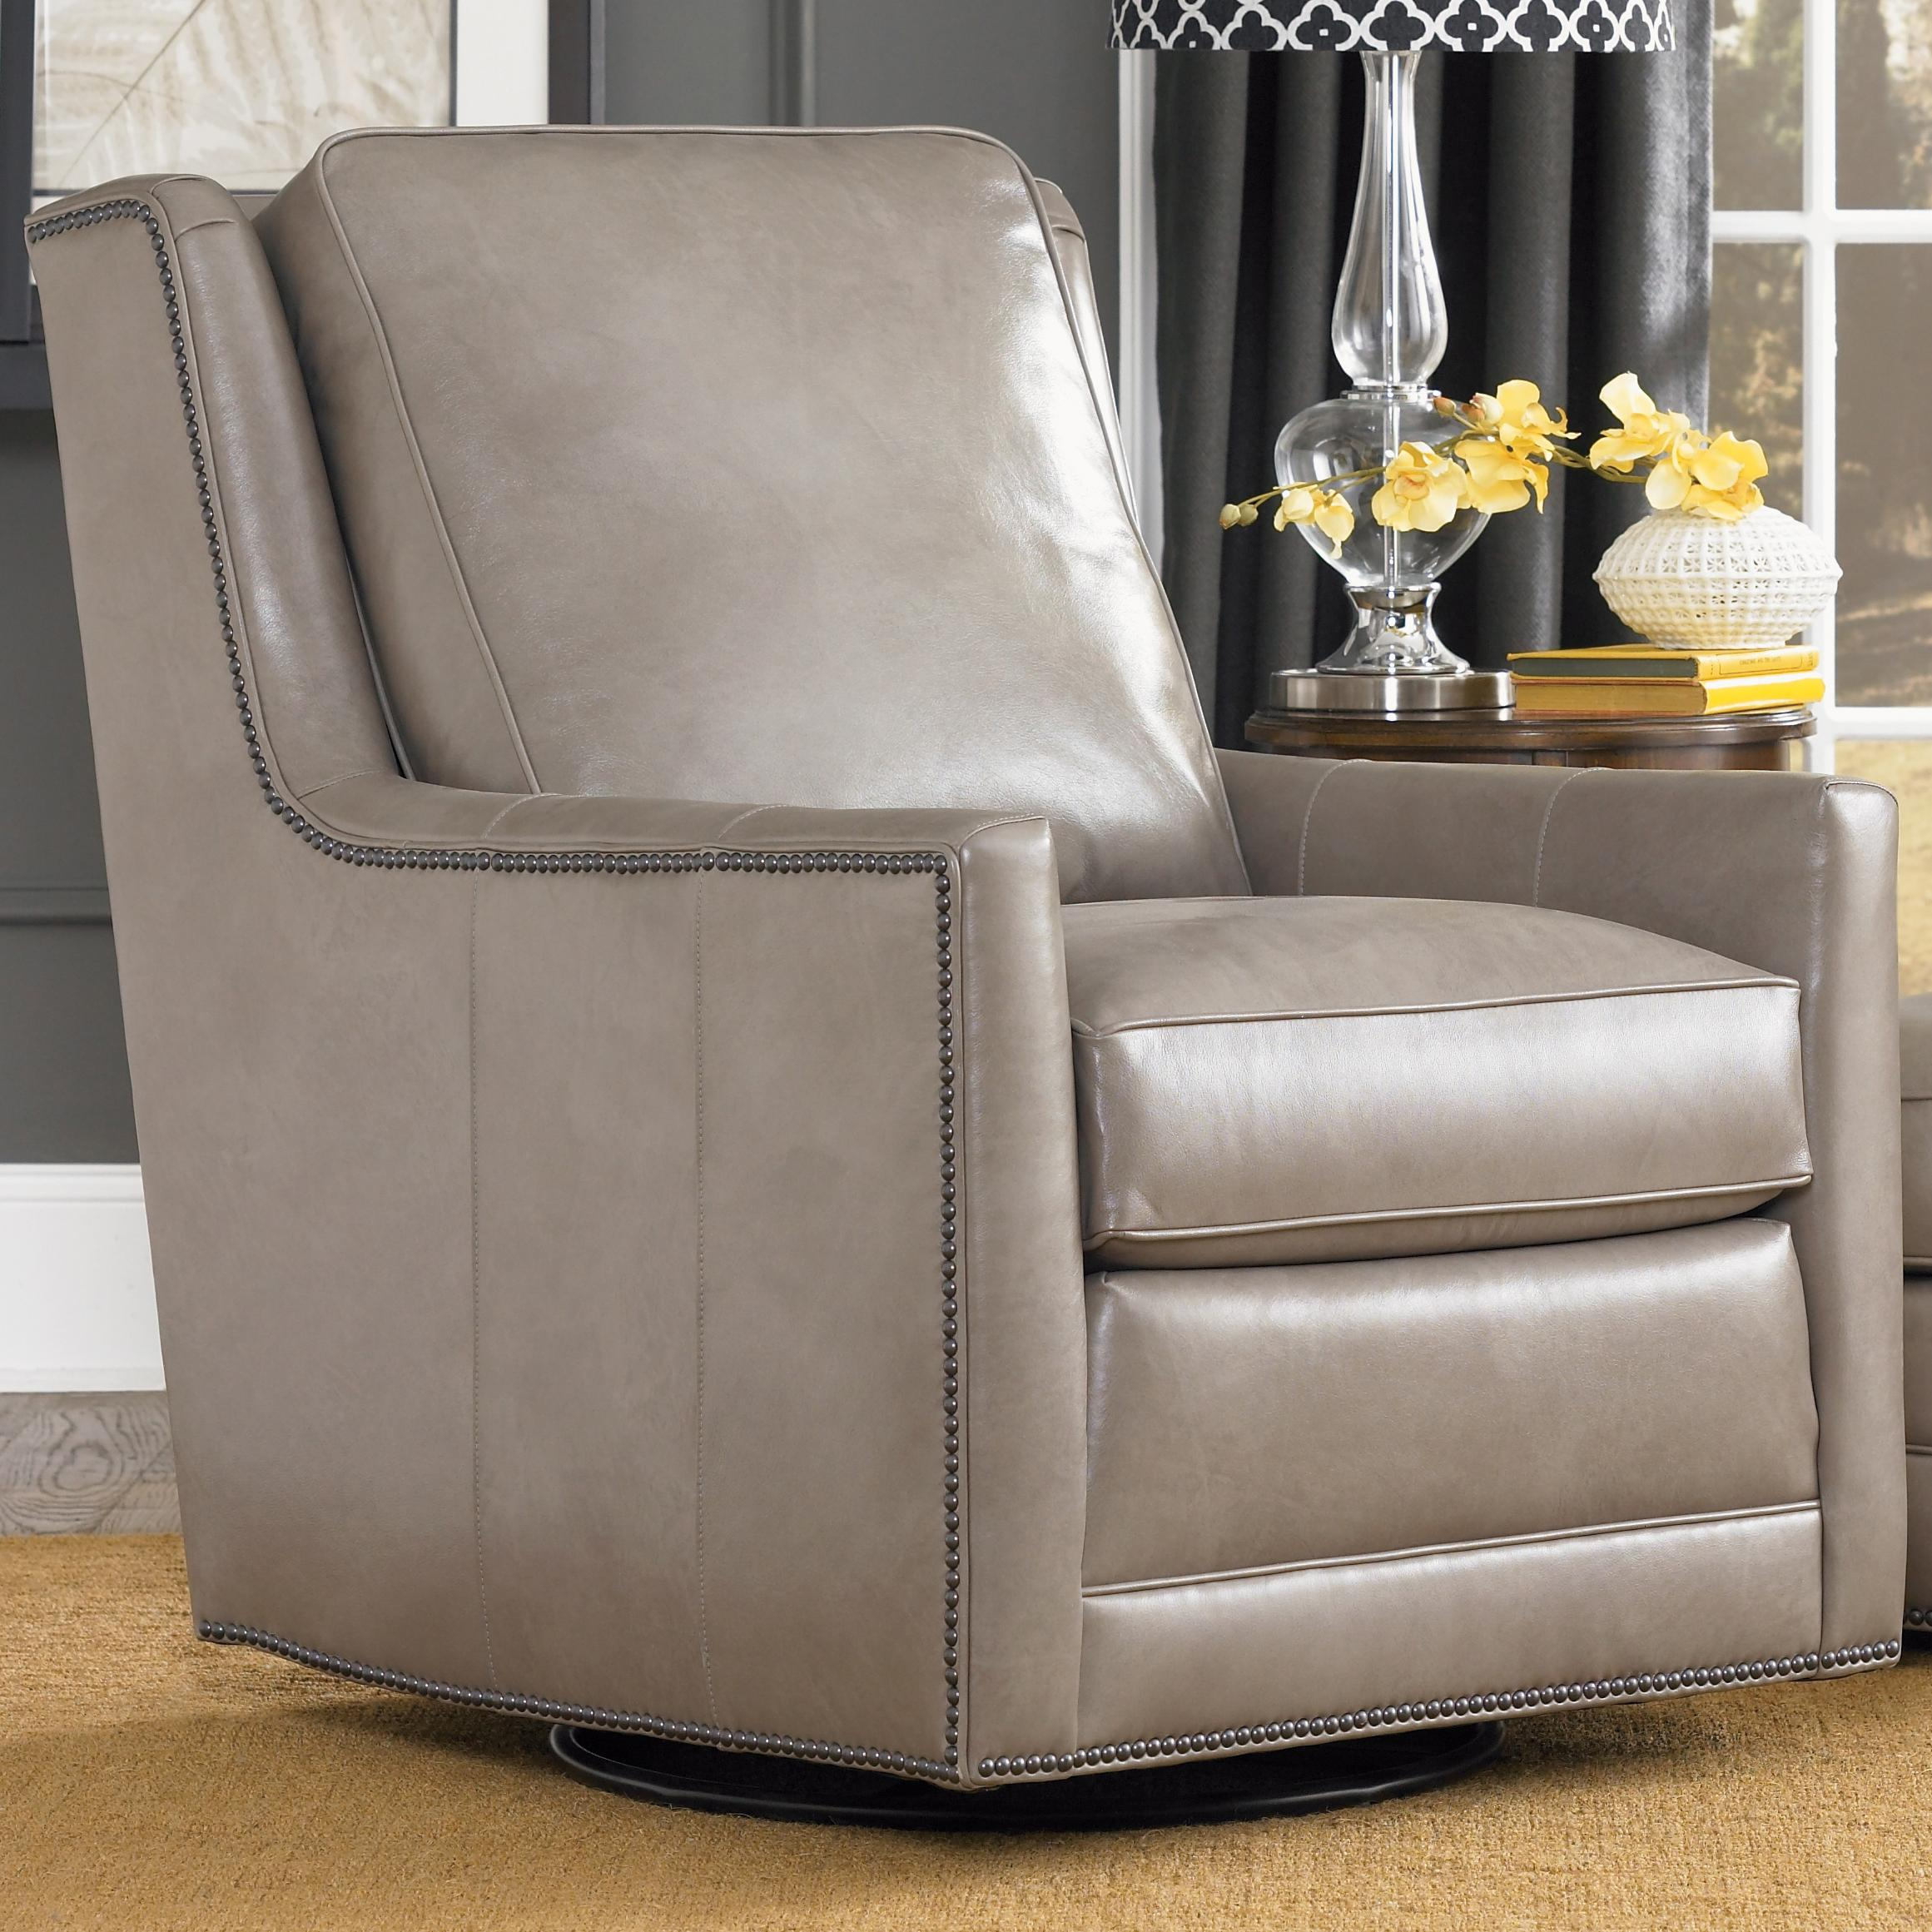 Accent Chairs And Ottomans Sb Transitional Swivel Chair Regarding Swivel Sofa Chairs (View 4 of 15)